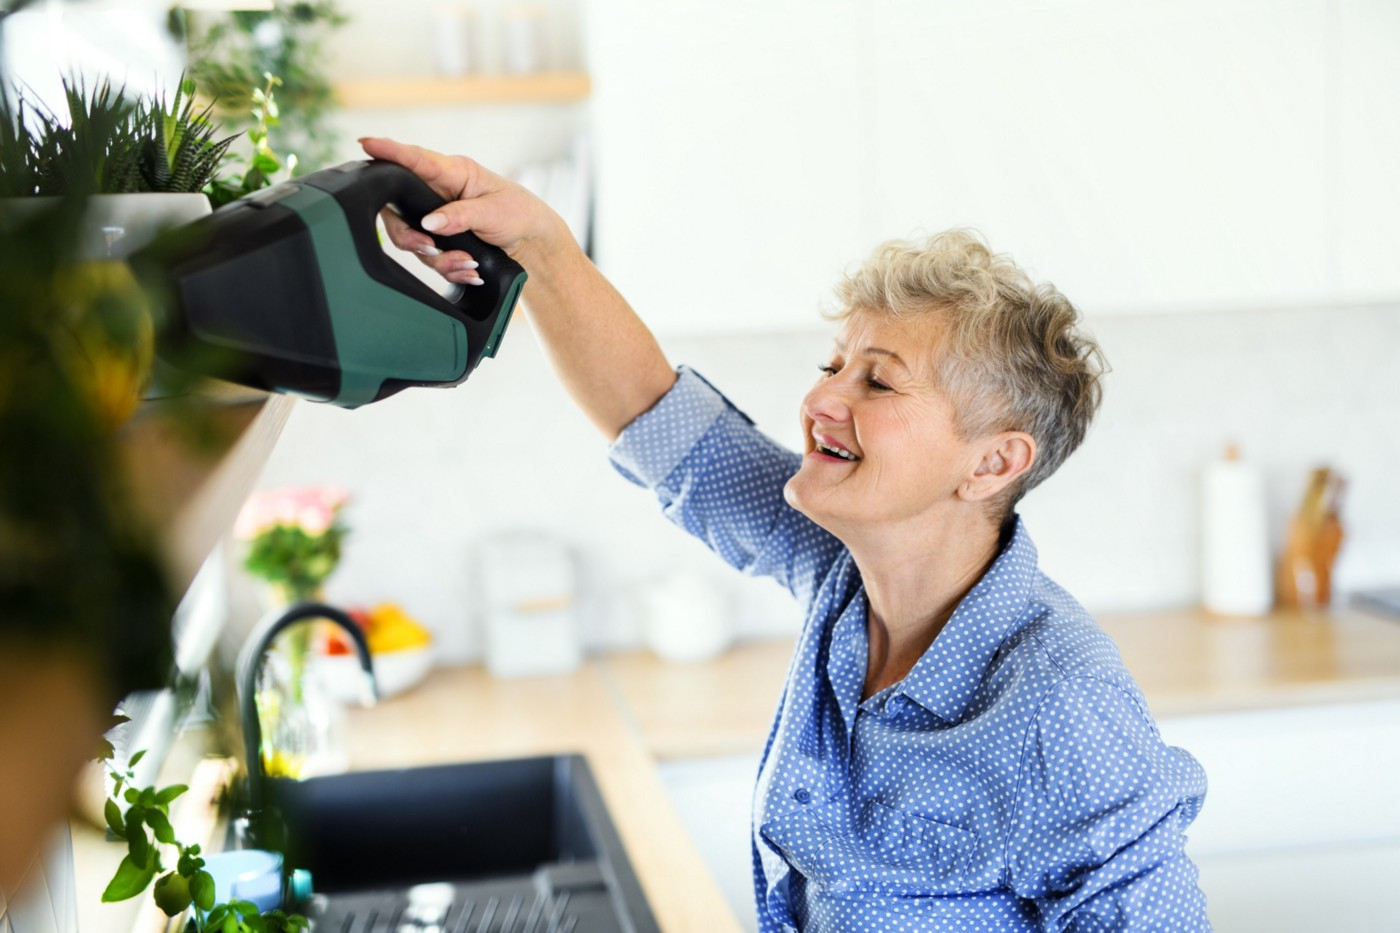 Woman cleaning her kitchen with a smile.